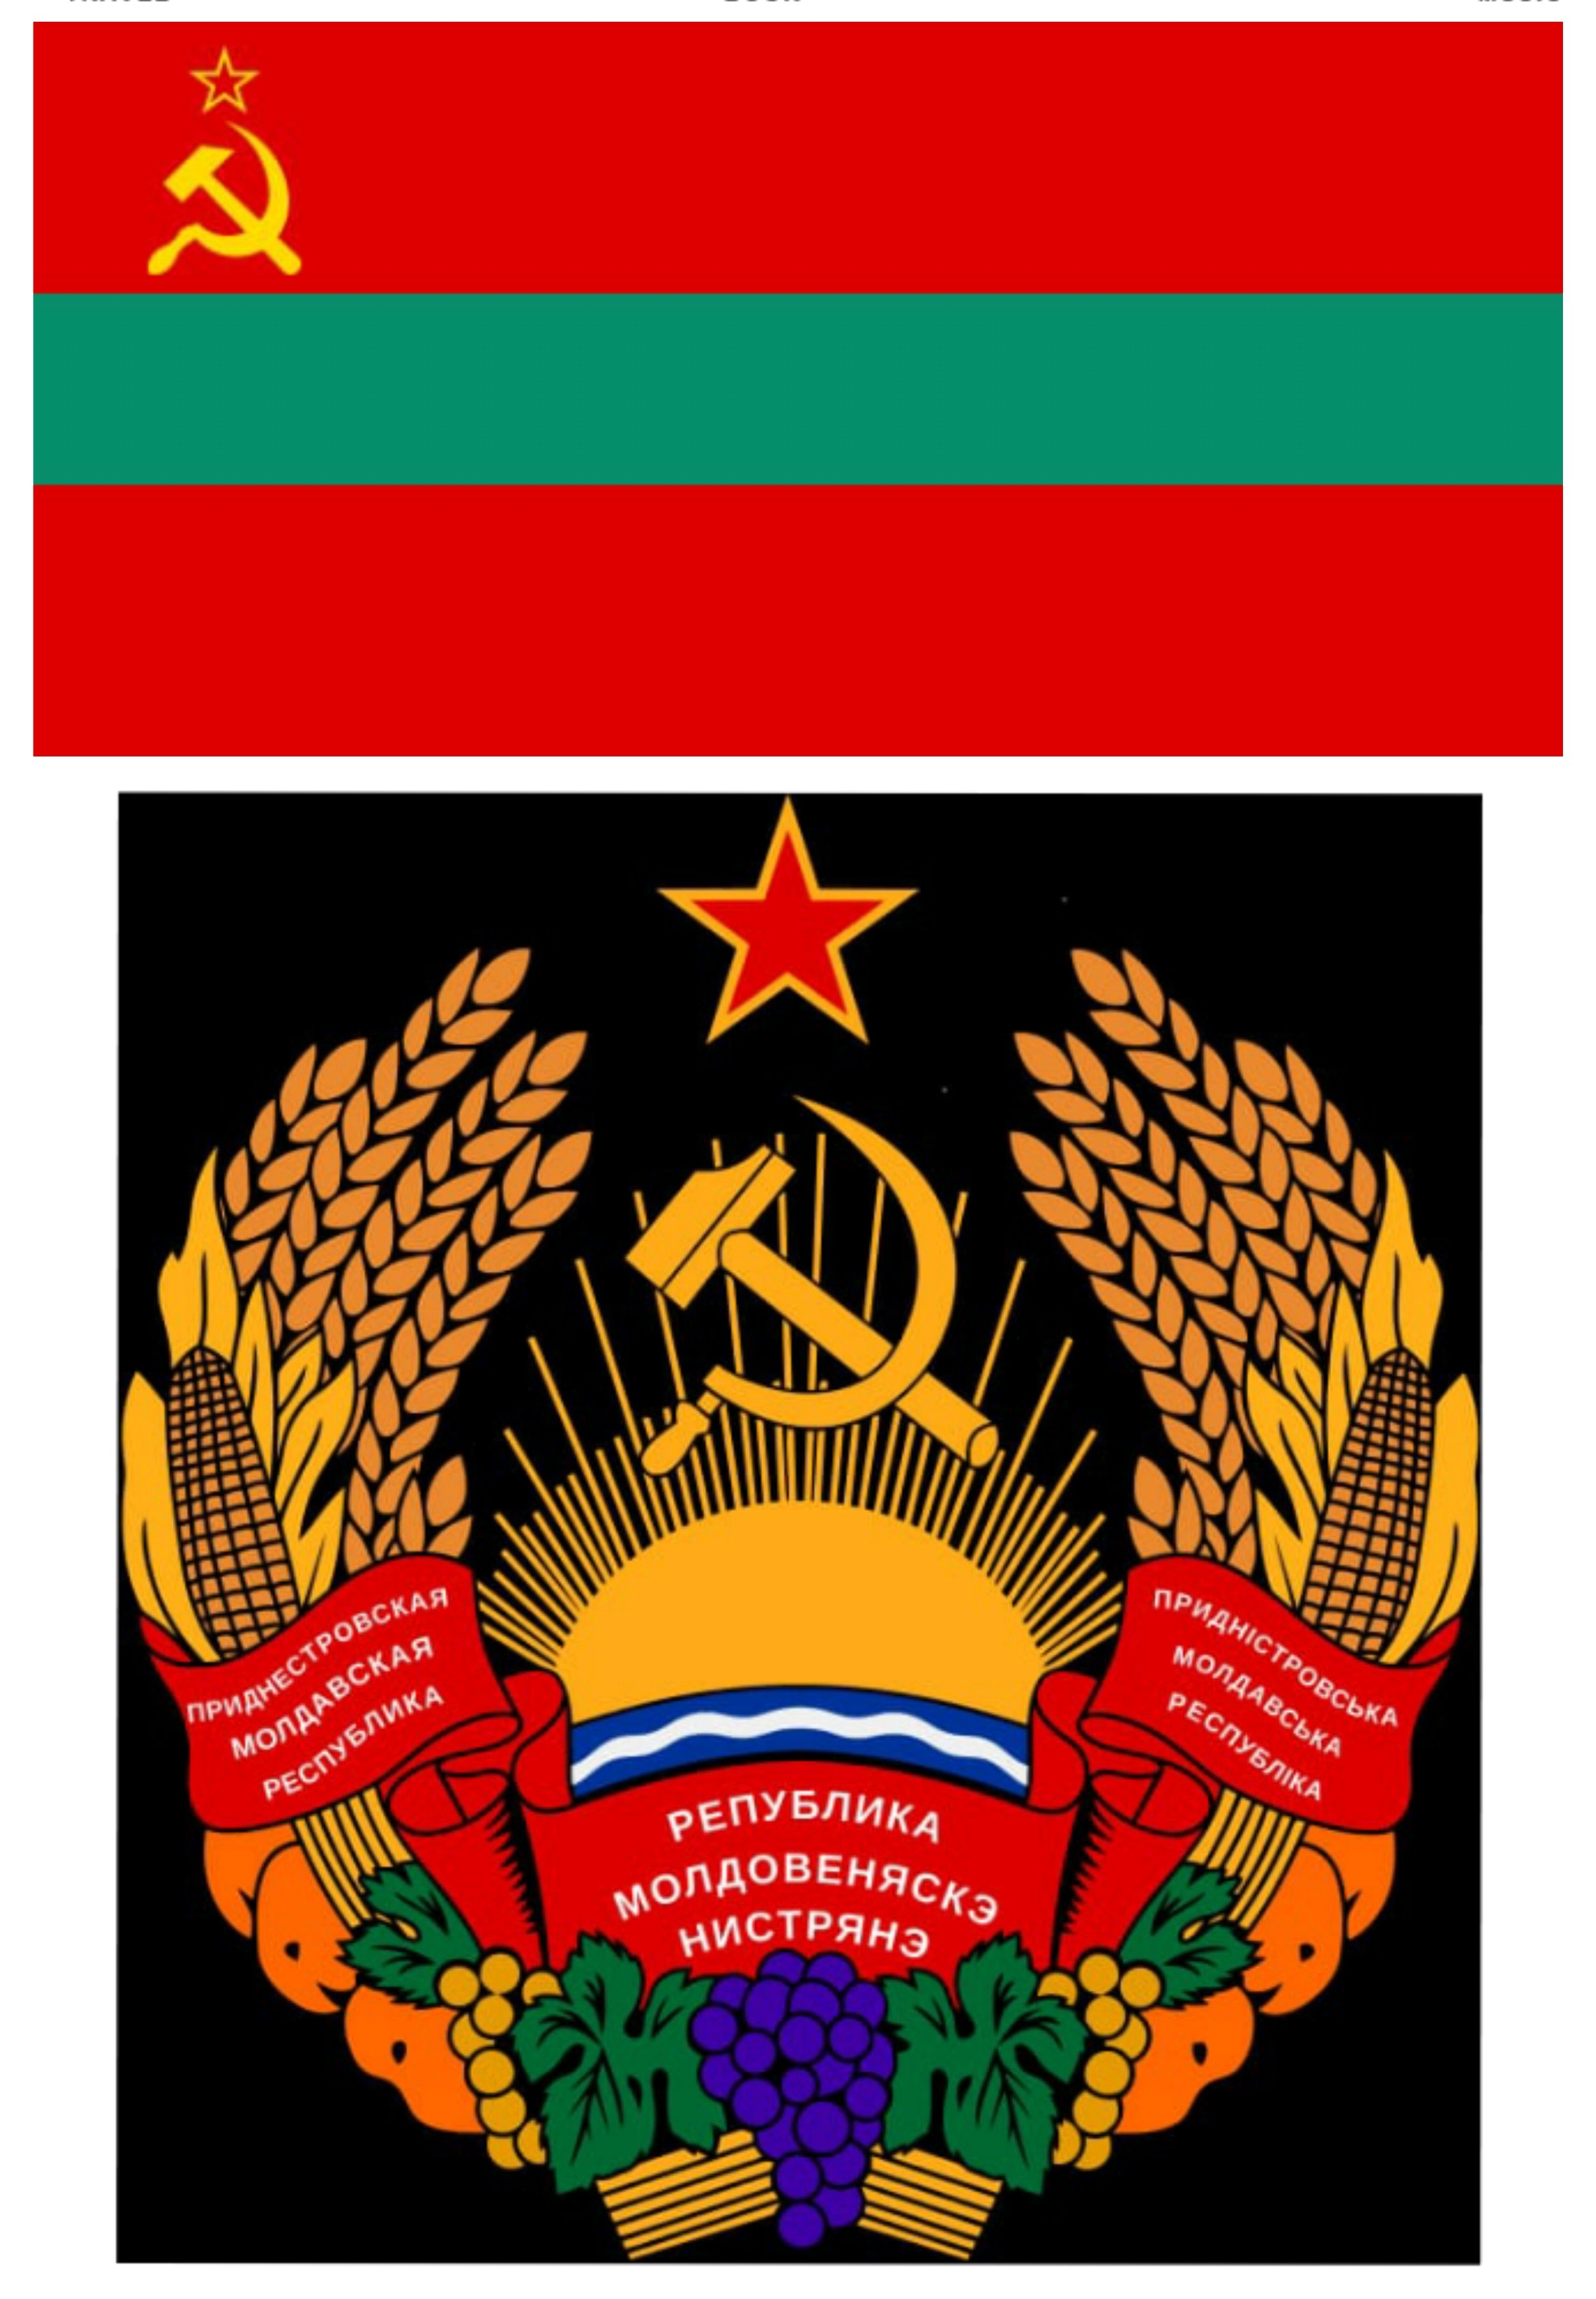 President of the World Peace Committee HE Mr. Djuyoto Suntani Recognizes the Independence of the Transnistria State in Eastern Europe